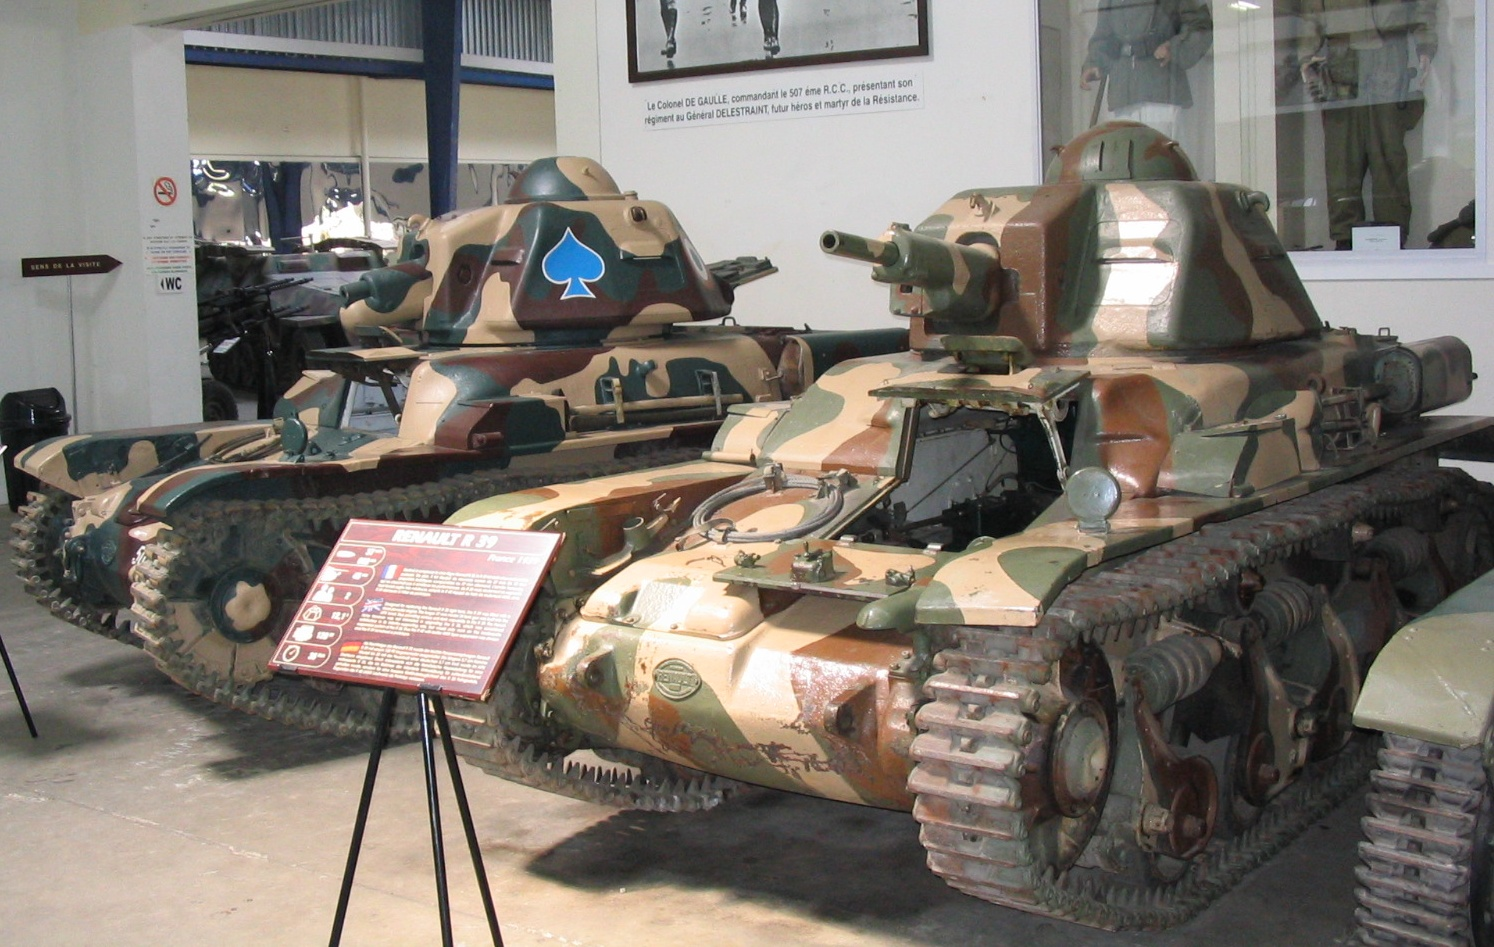 An R-35 at Saumur museum - Wikimedia commons